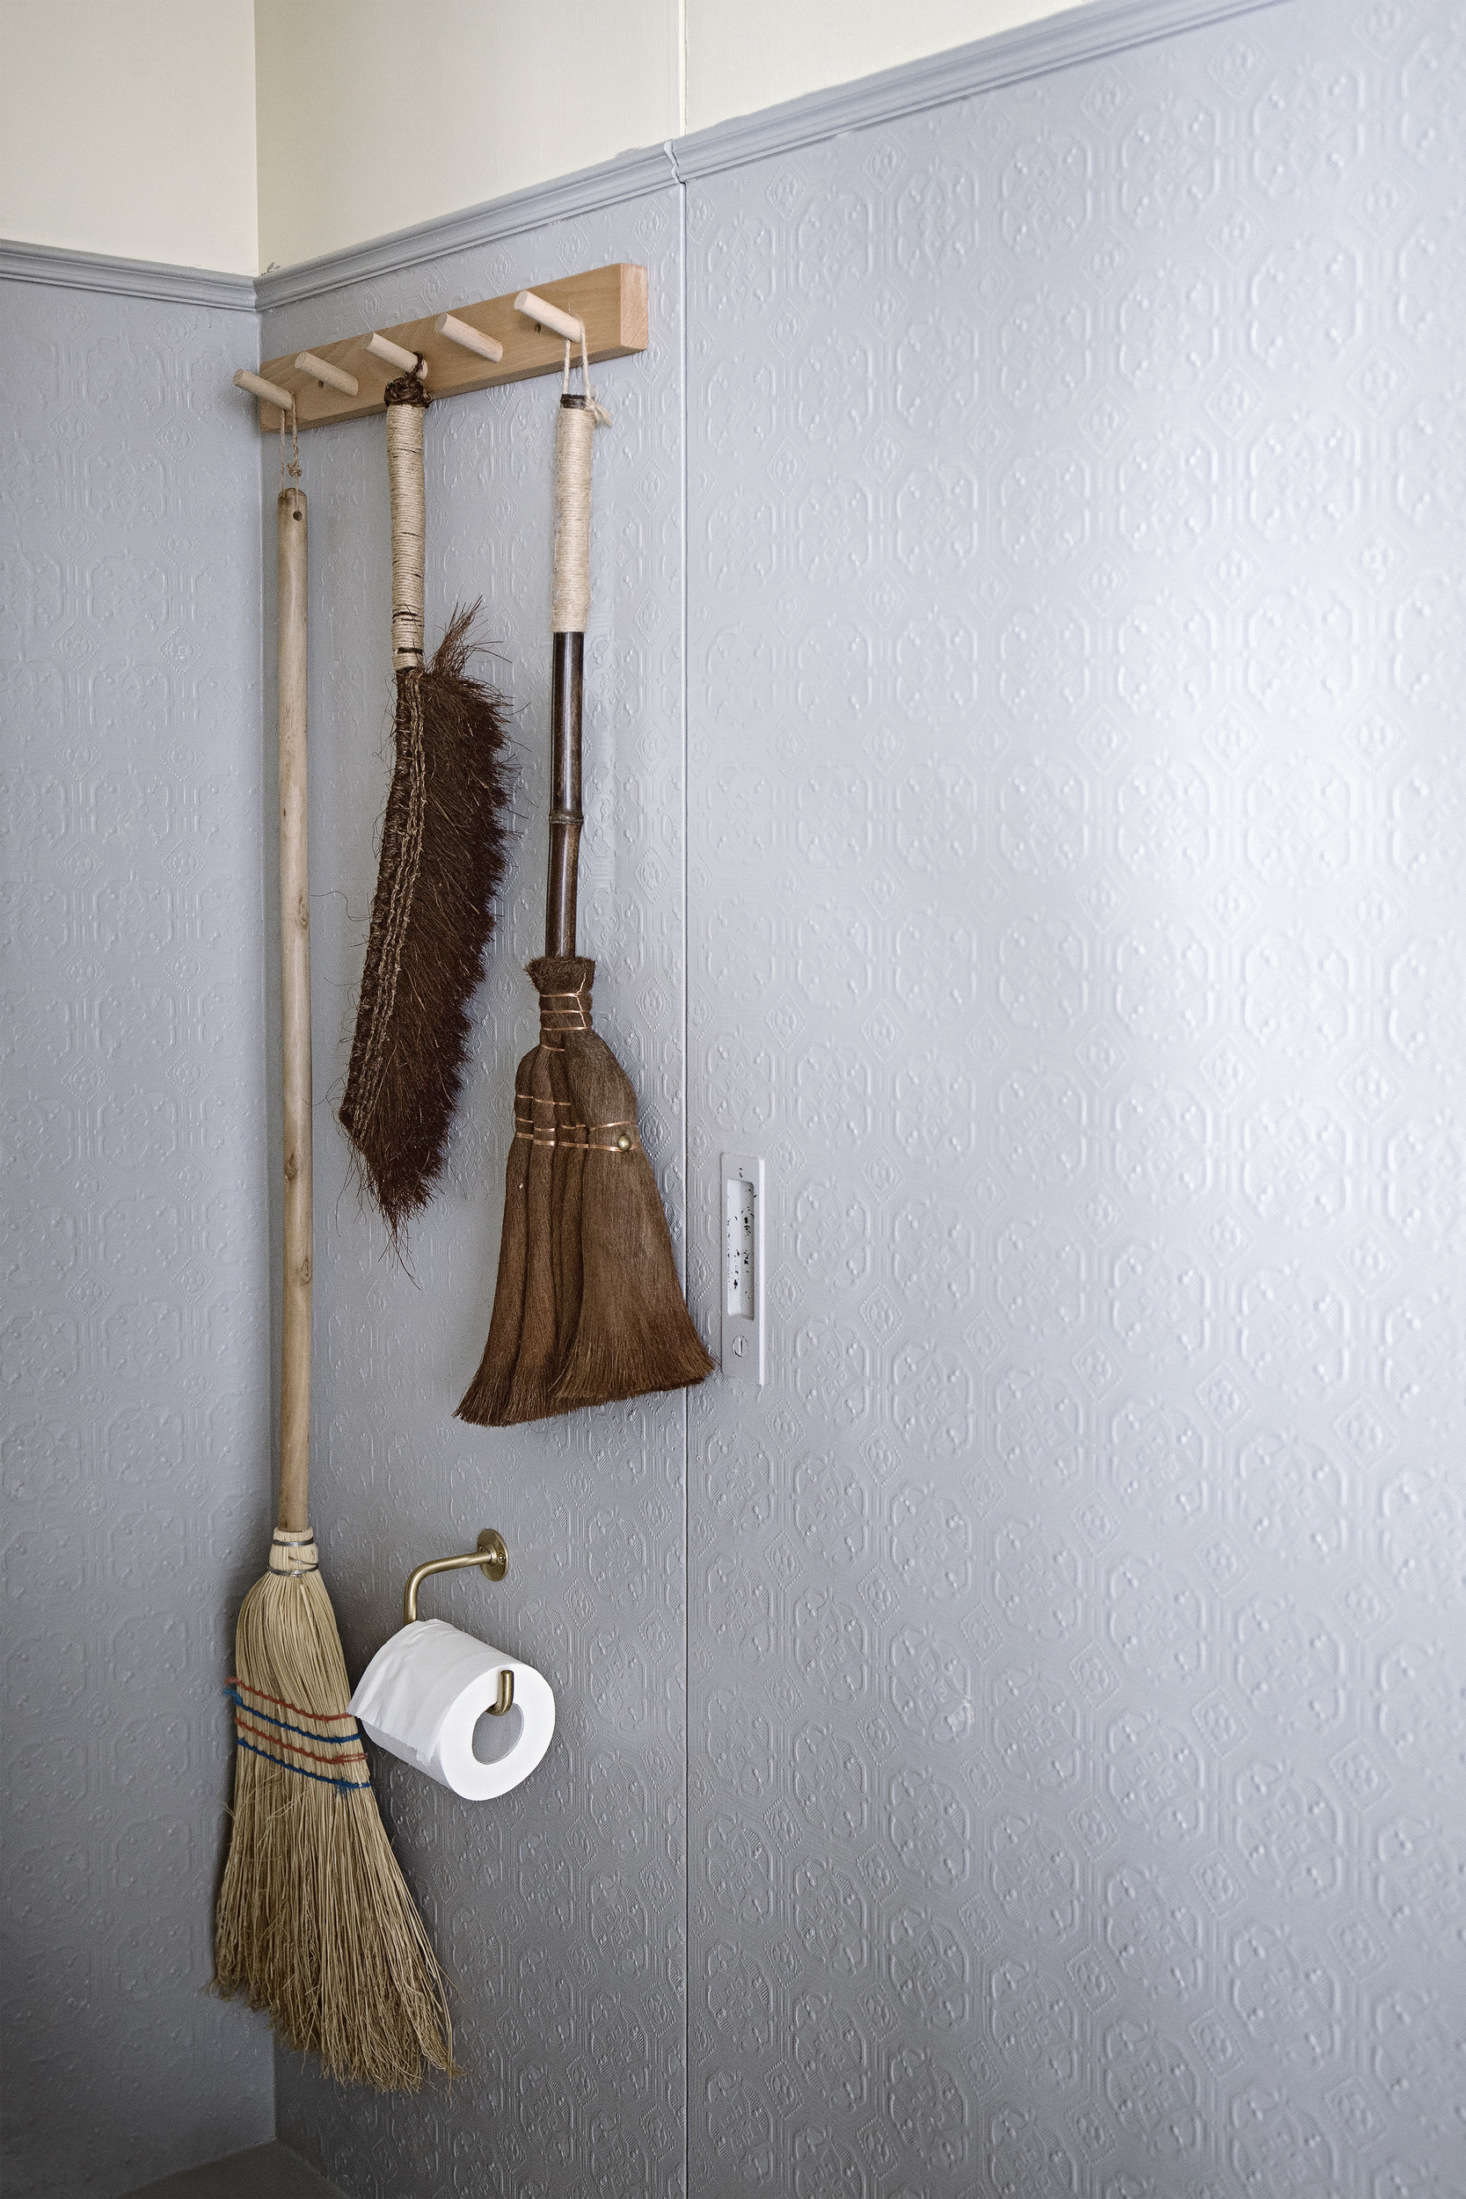 The guest bathroom has artful brooms hanging off a peg rail. Painted textured wallpaper lines the walls here. Mandy&#8